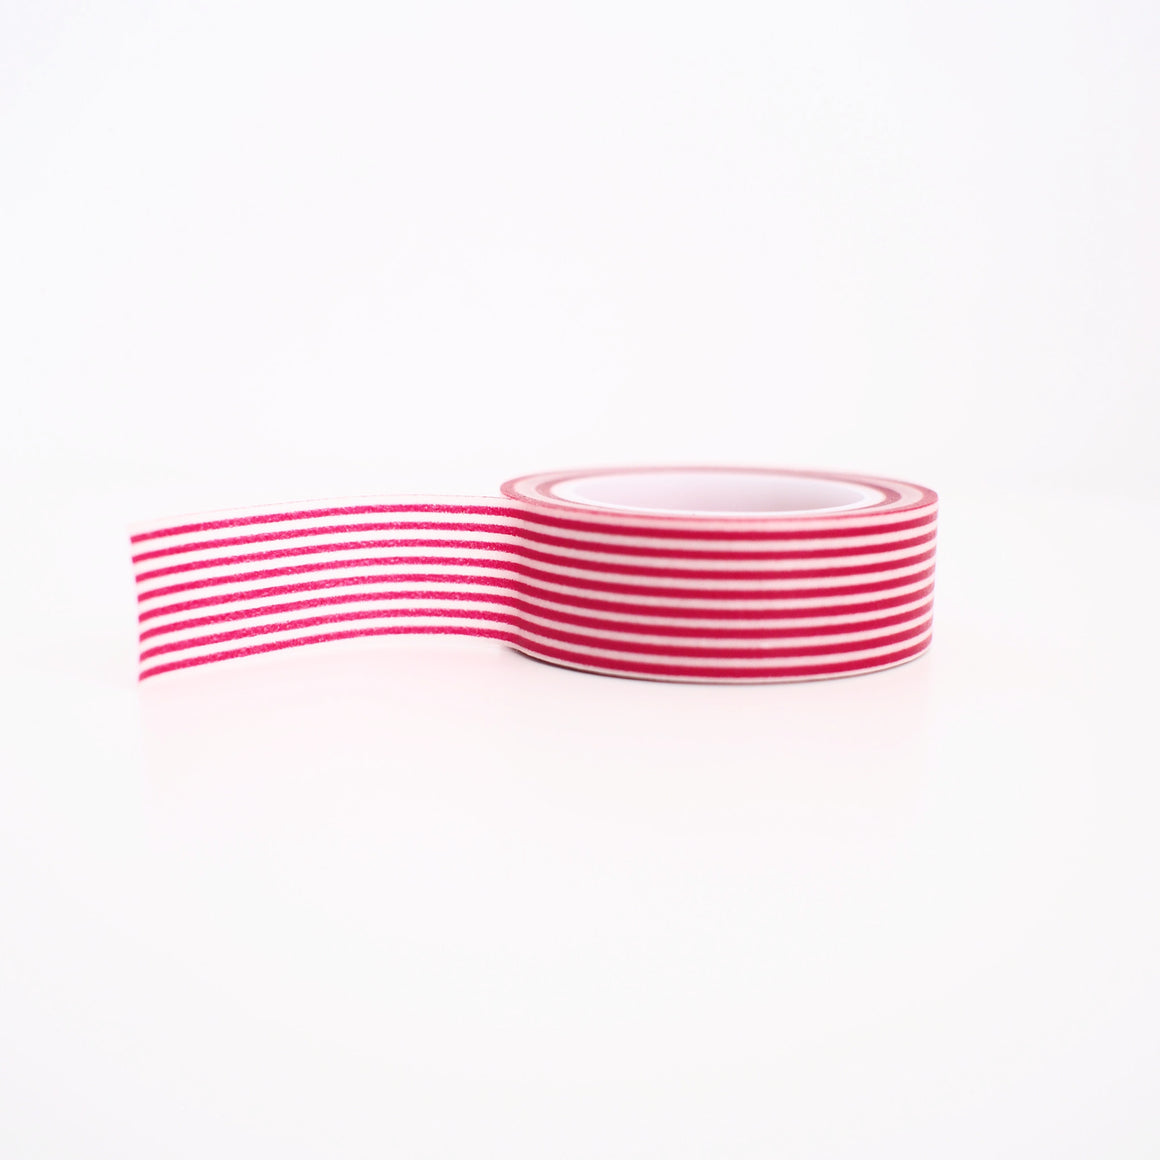 Washi Tape - Thin Red Stripes